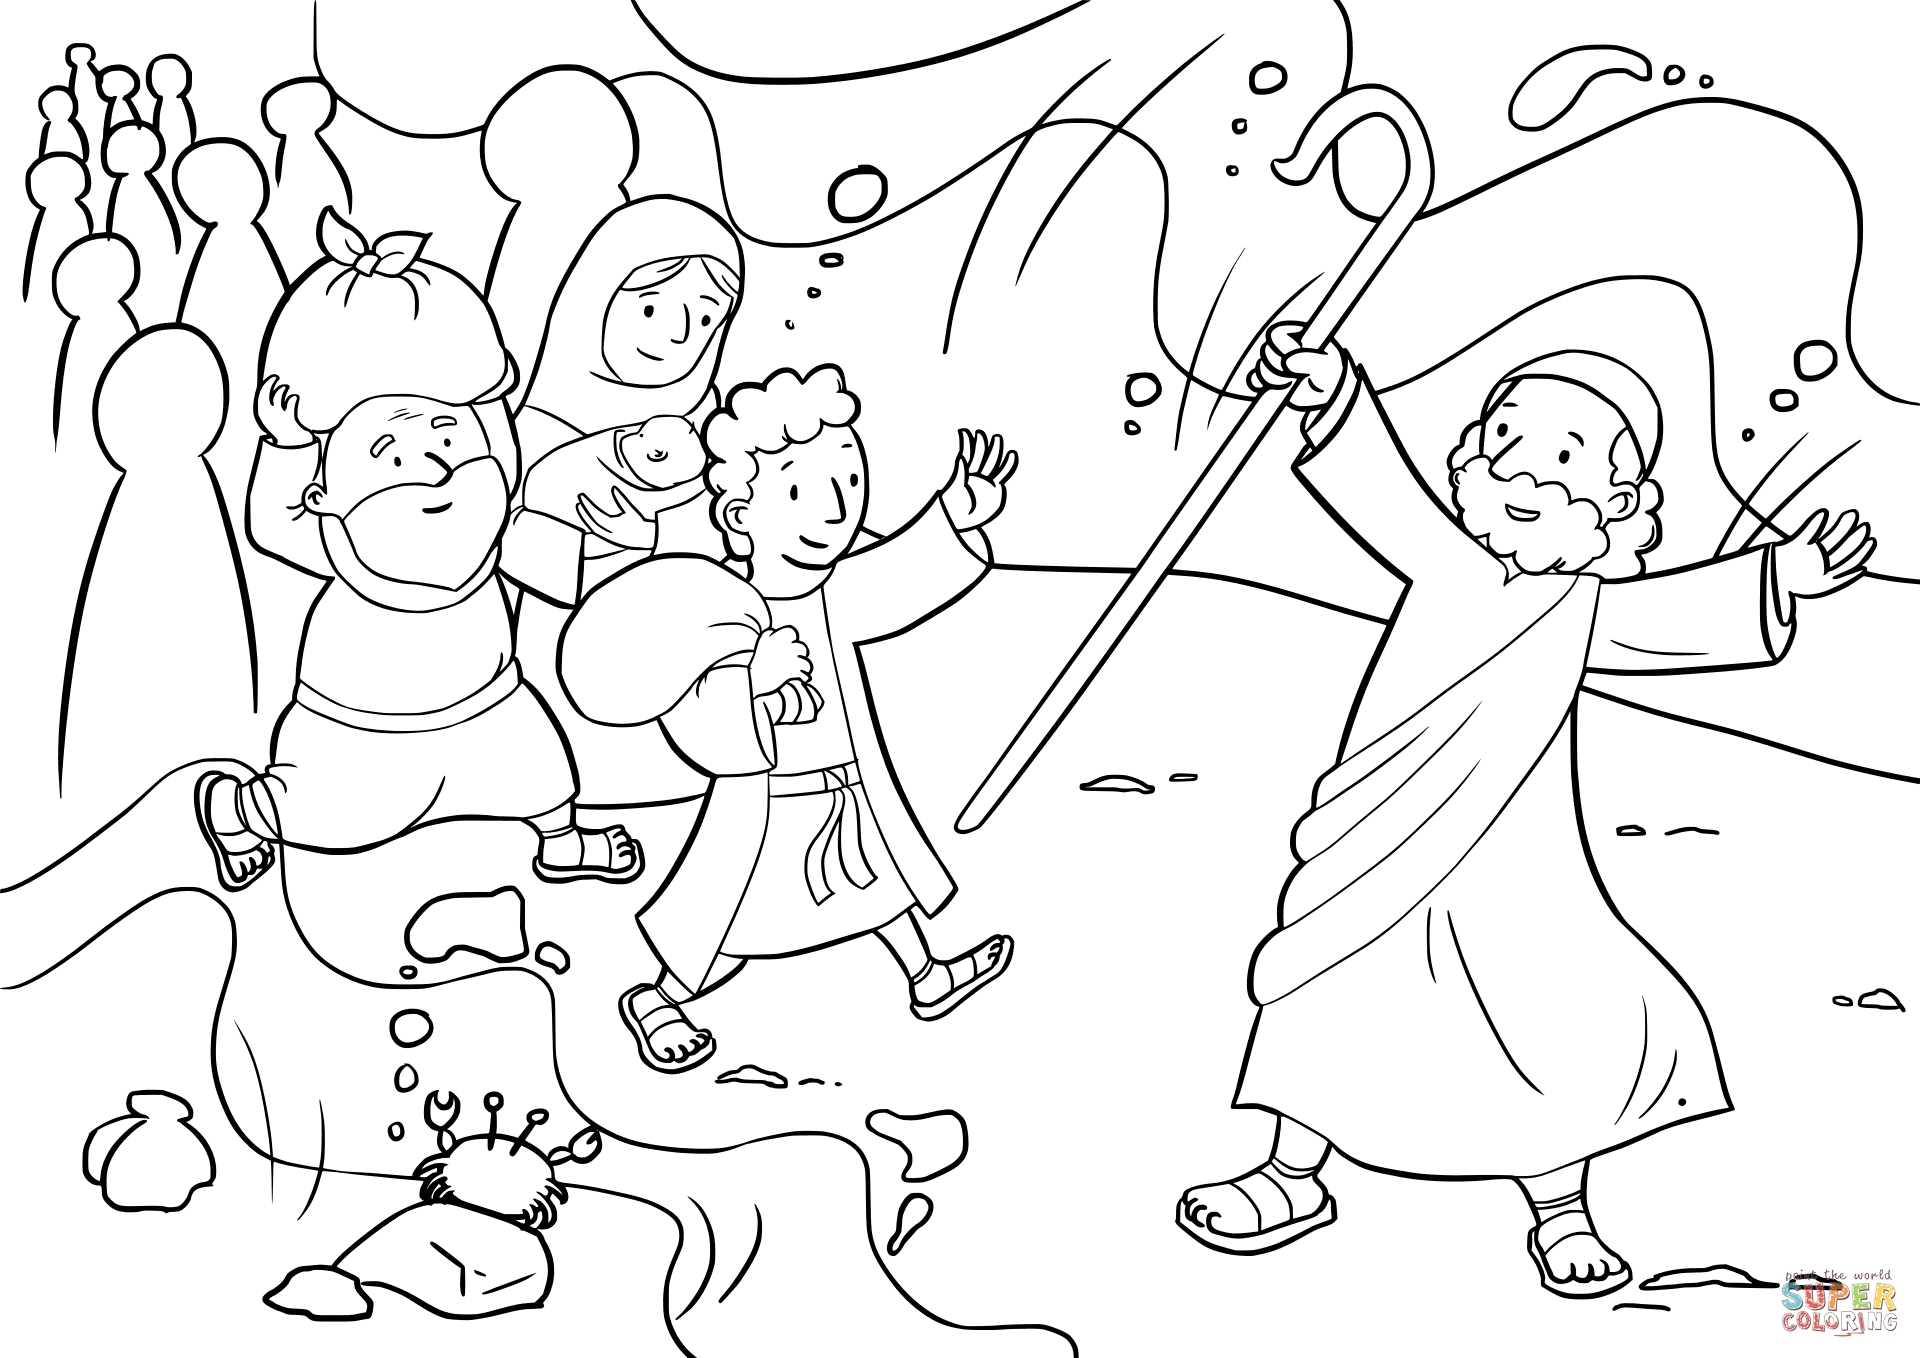 Israelites Cross The Red Sea Coloring Page